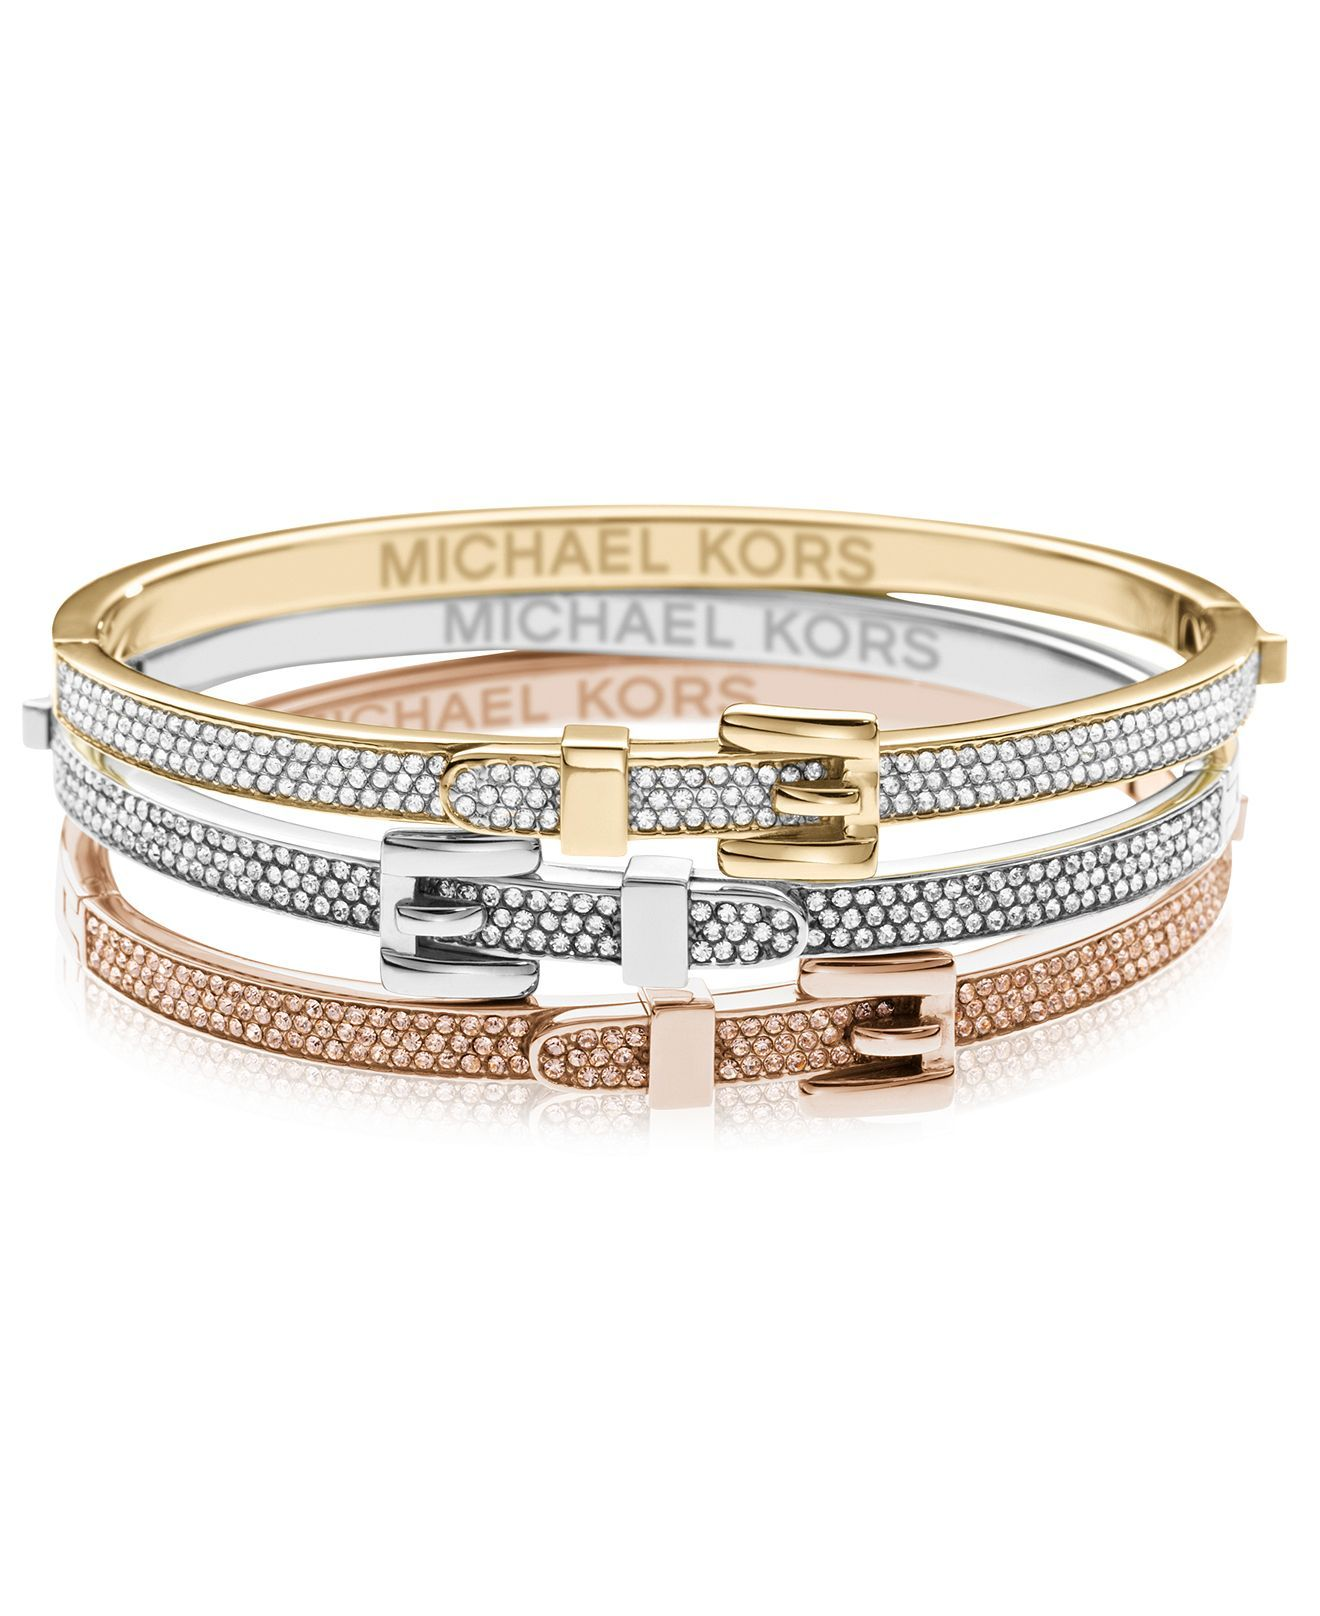 Michael Kors Bracelet Tri Tone Bundle Glitter Belt Buckle Bangle Bracelets